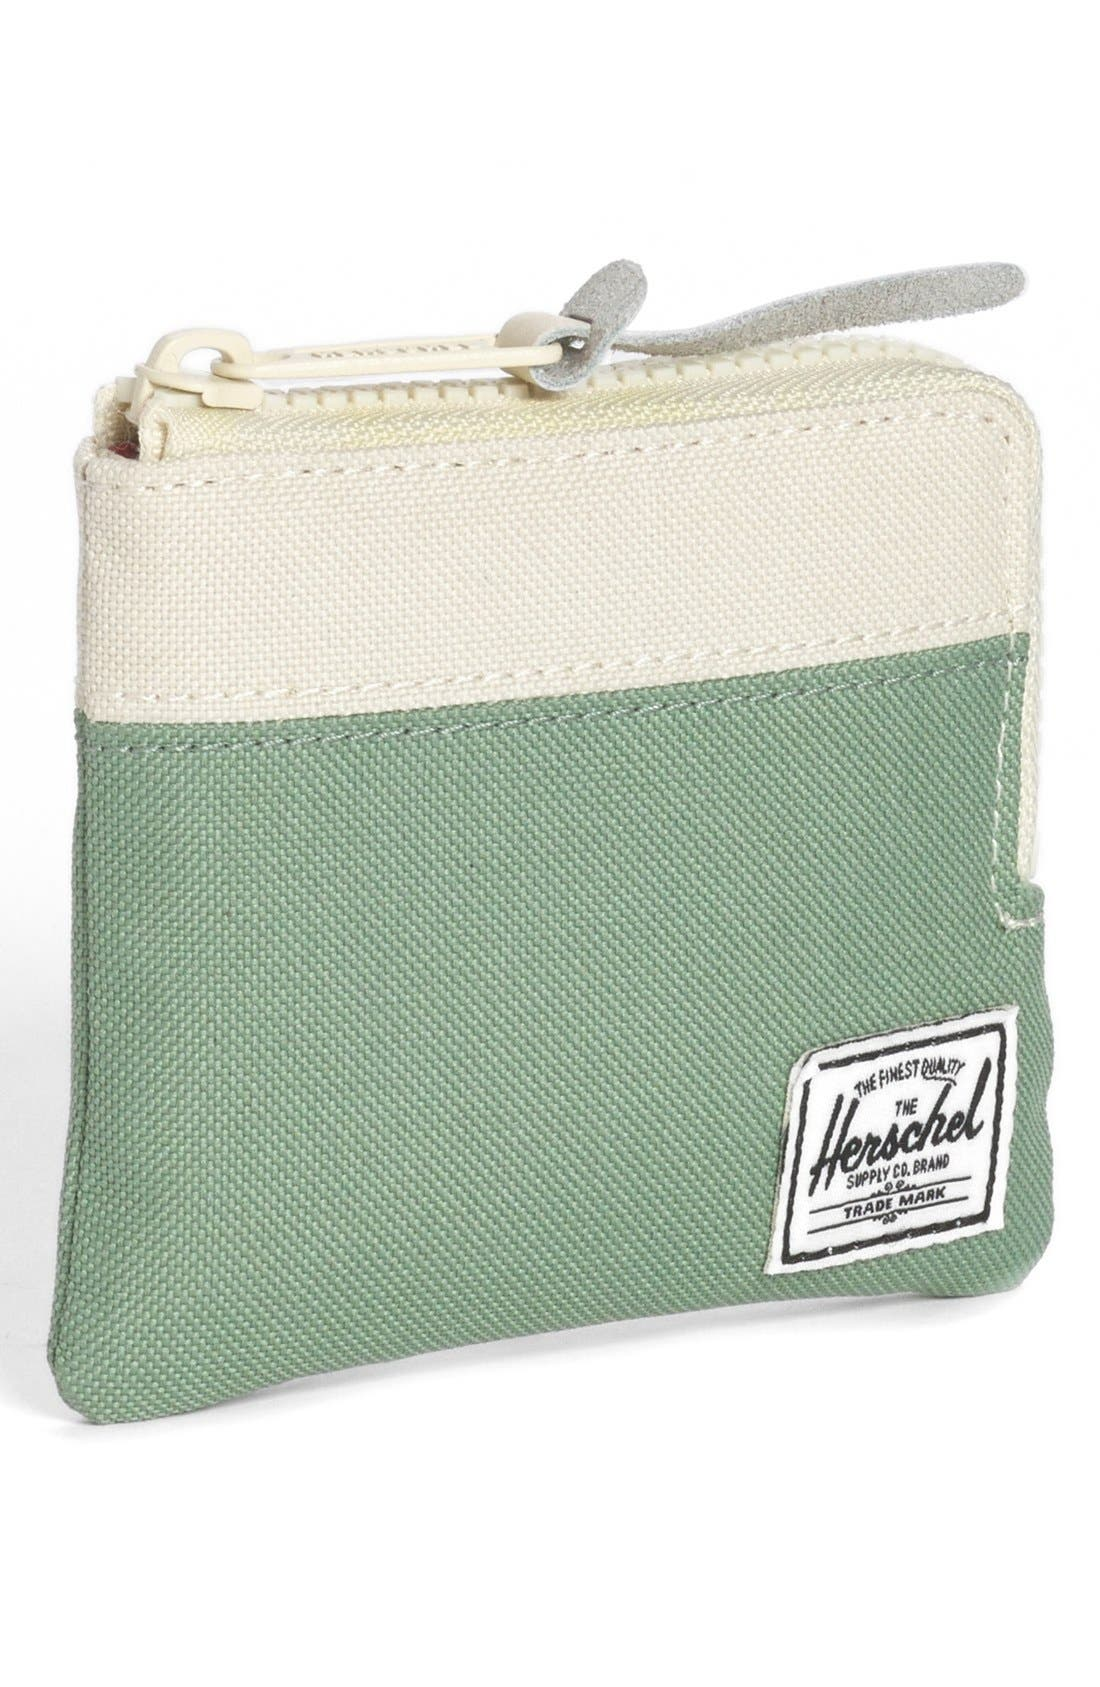 Alternate Image 1 Selected - Herschel Supply Co. 'Johnny - Rad Cars with Rad Surfboards Collection' Zip Wallet